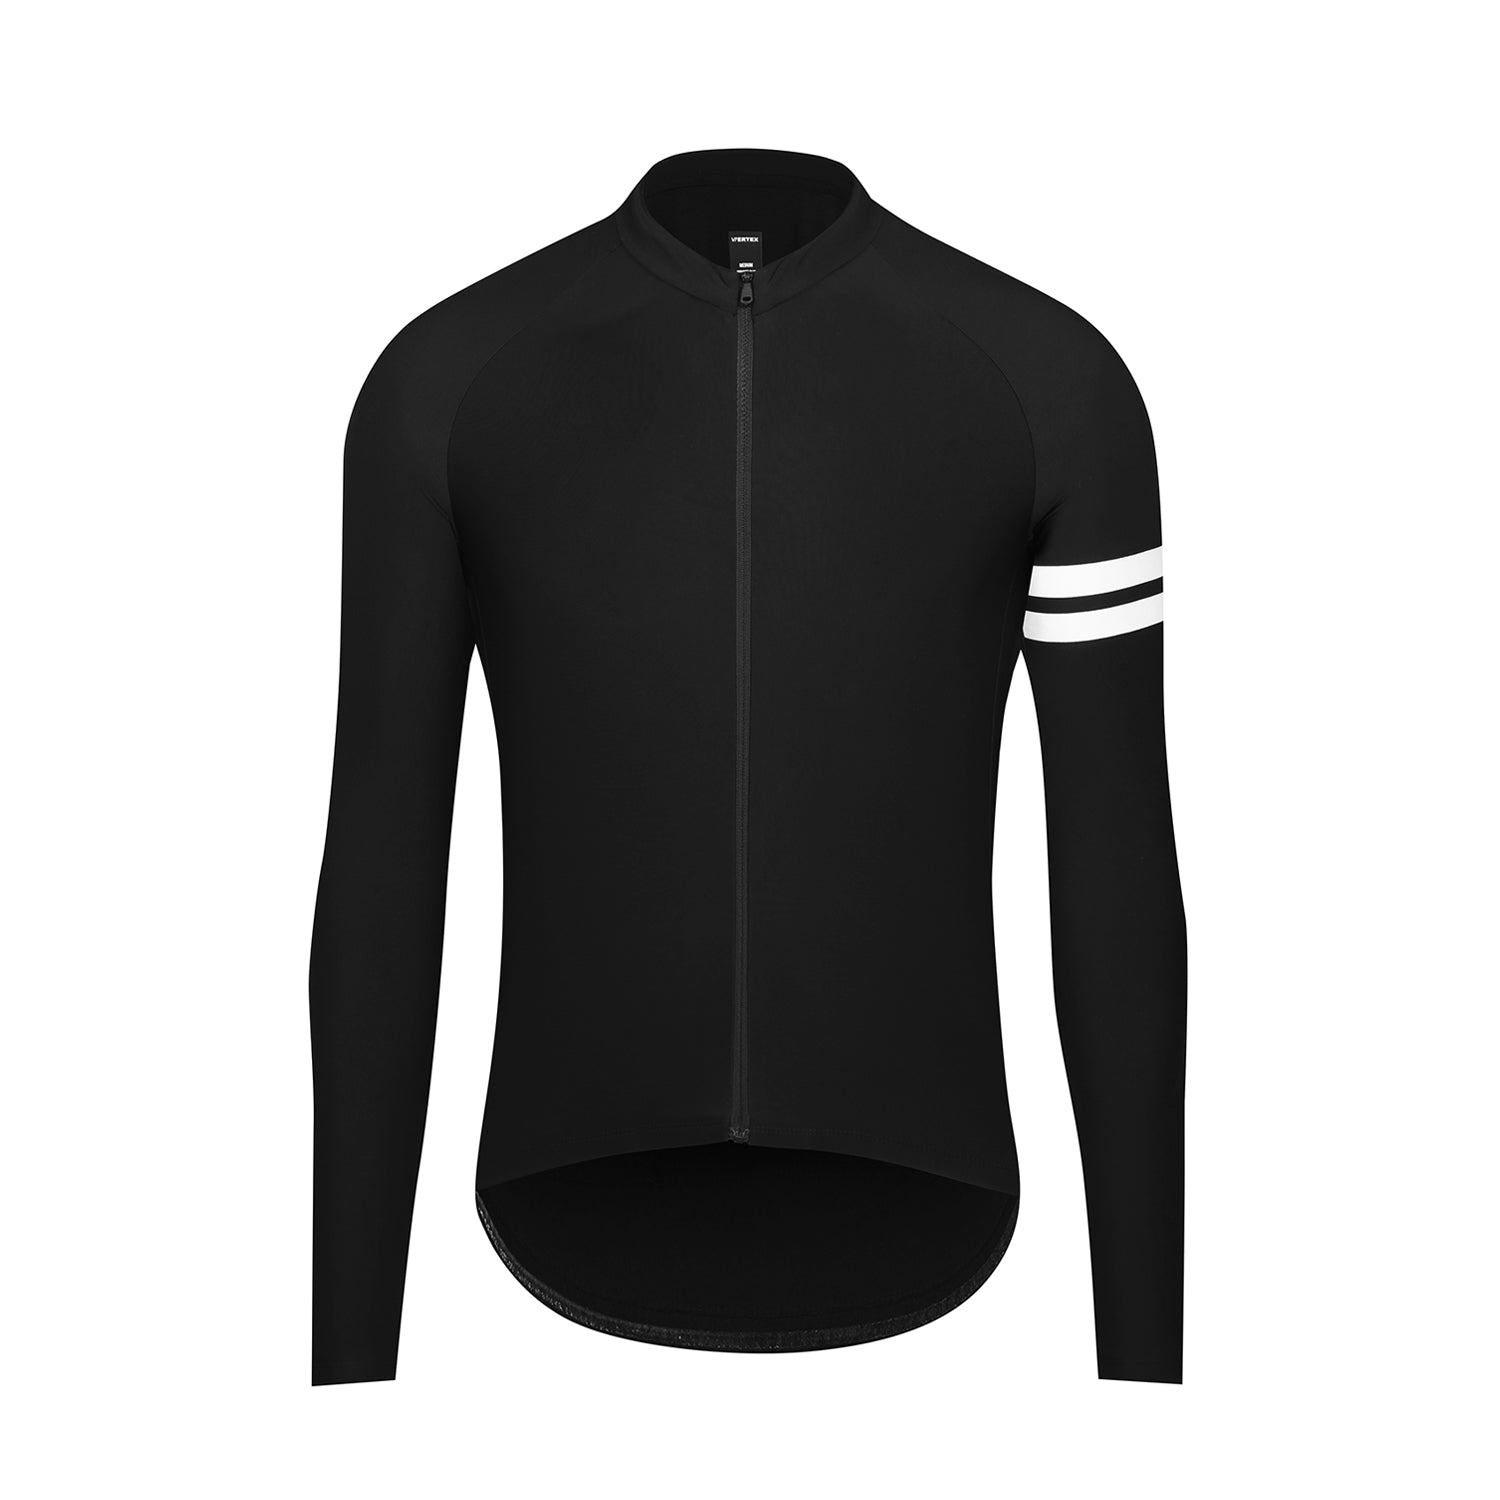 Team Winter Long Sleeve Jersey